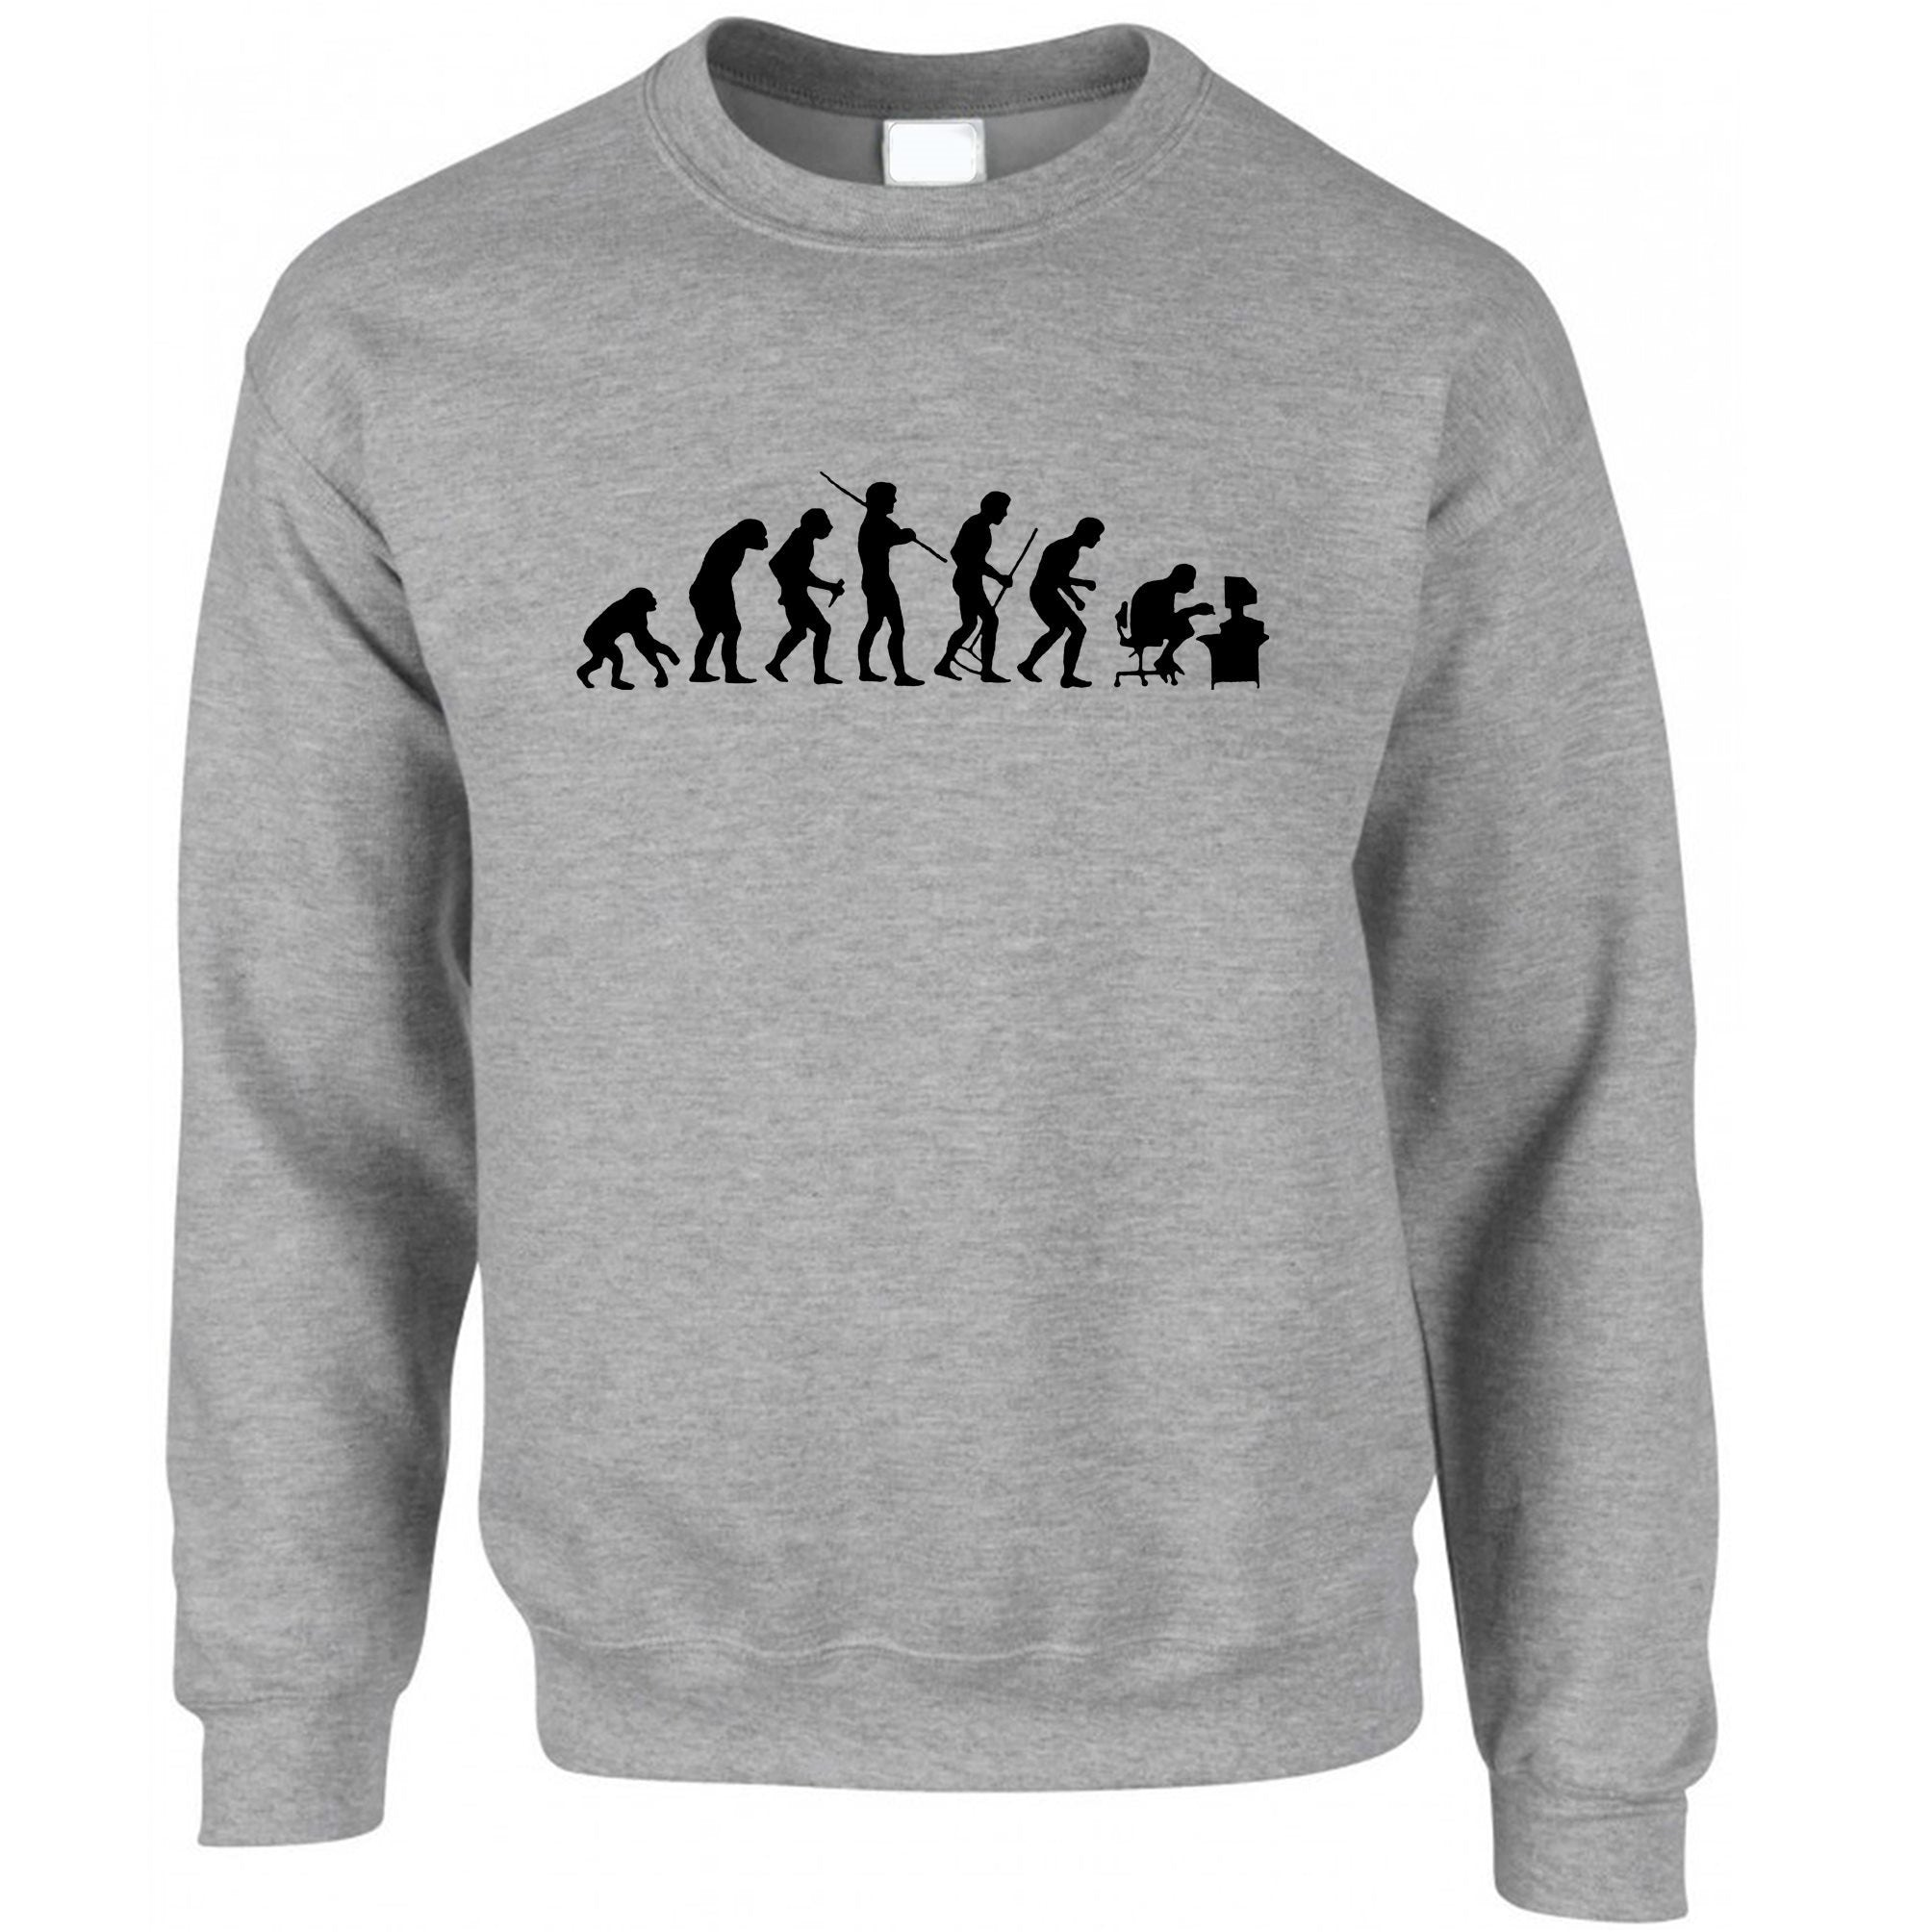 Novelty Geek Jumper Evolution Of A Computer Nerd Sweatshirt Sweater